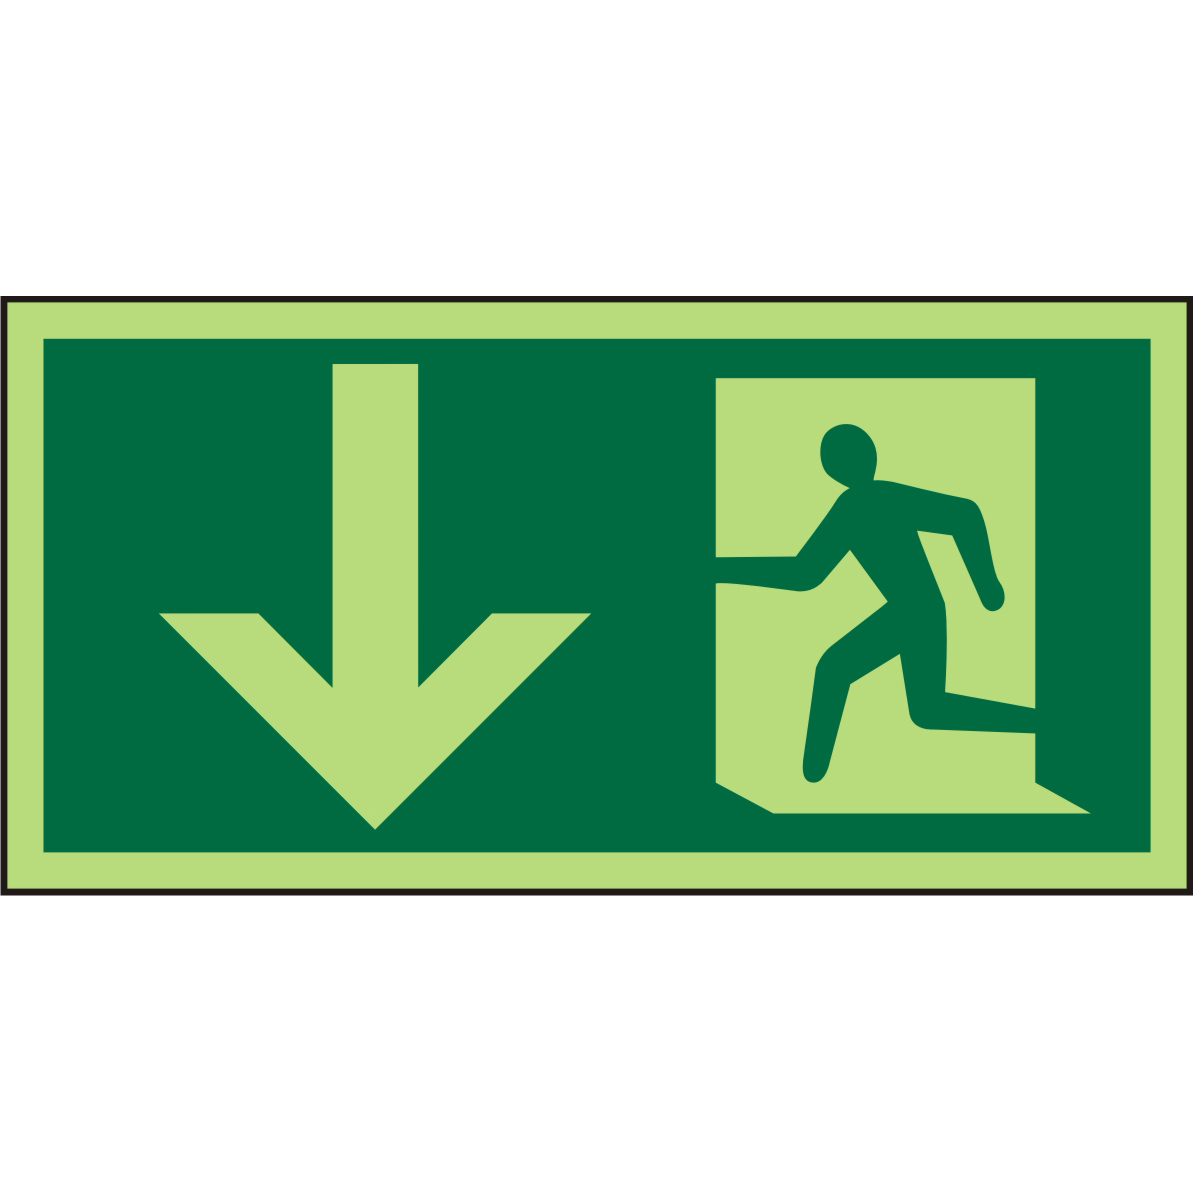 Photolum Sign 300x150 Plastic Man Running Left&Arrow down Ref PSP095SRP300x150 Up to 10 Day Leadtime